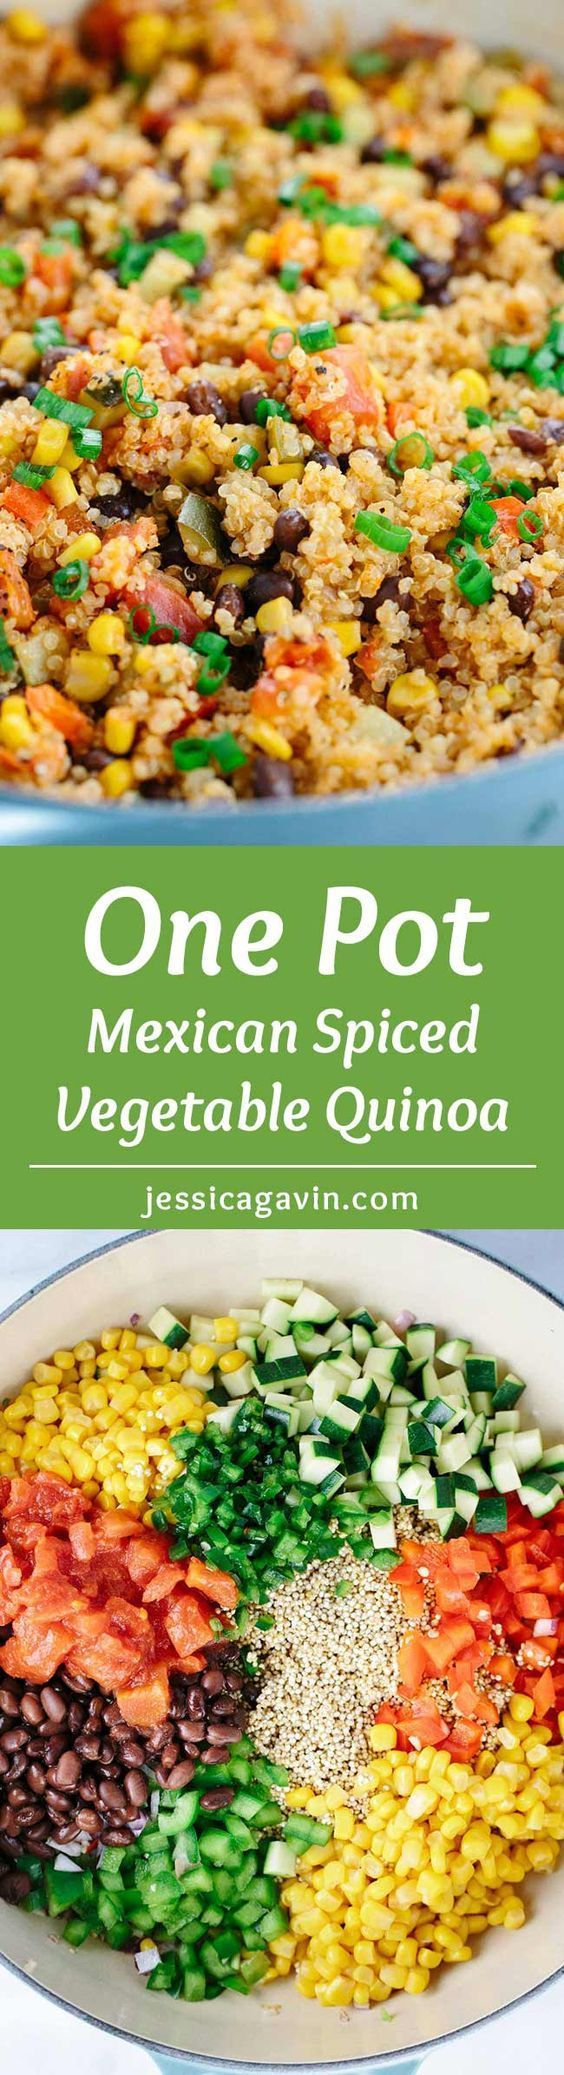 One Pot Mexican Spiced Vegetable Quinoa - This recipe is loaded with bold flavors and healthy ingredients like protein, fiber, and vegetables in each delicious spoonful. | http://jessicagavin.com